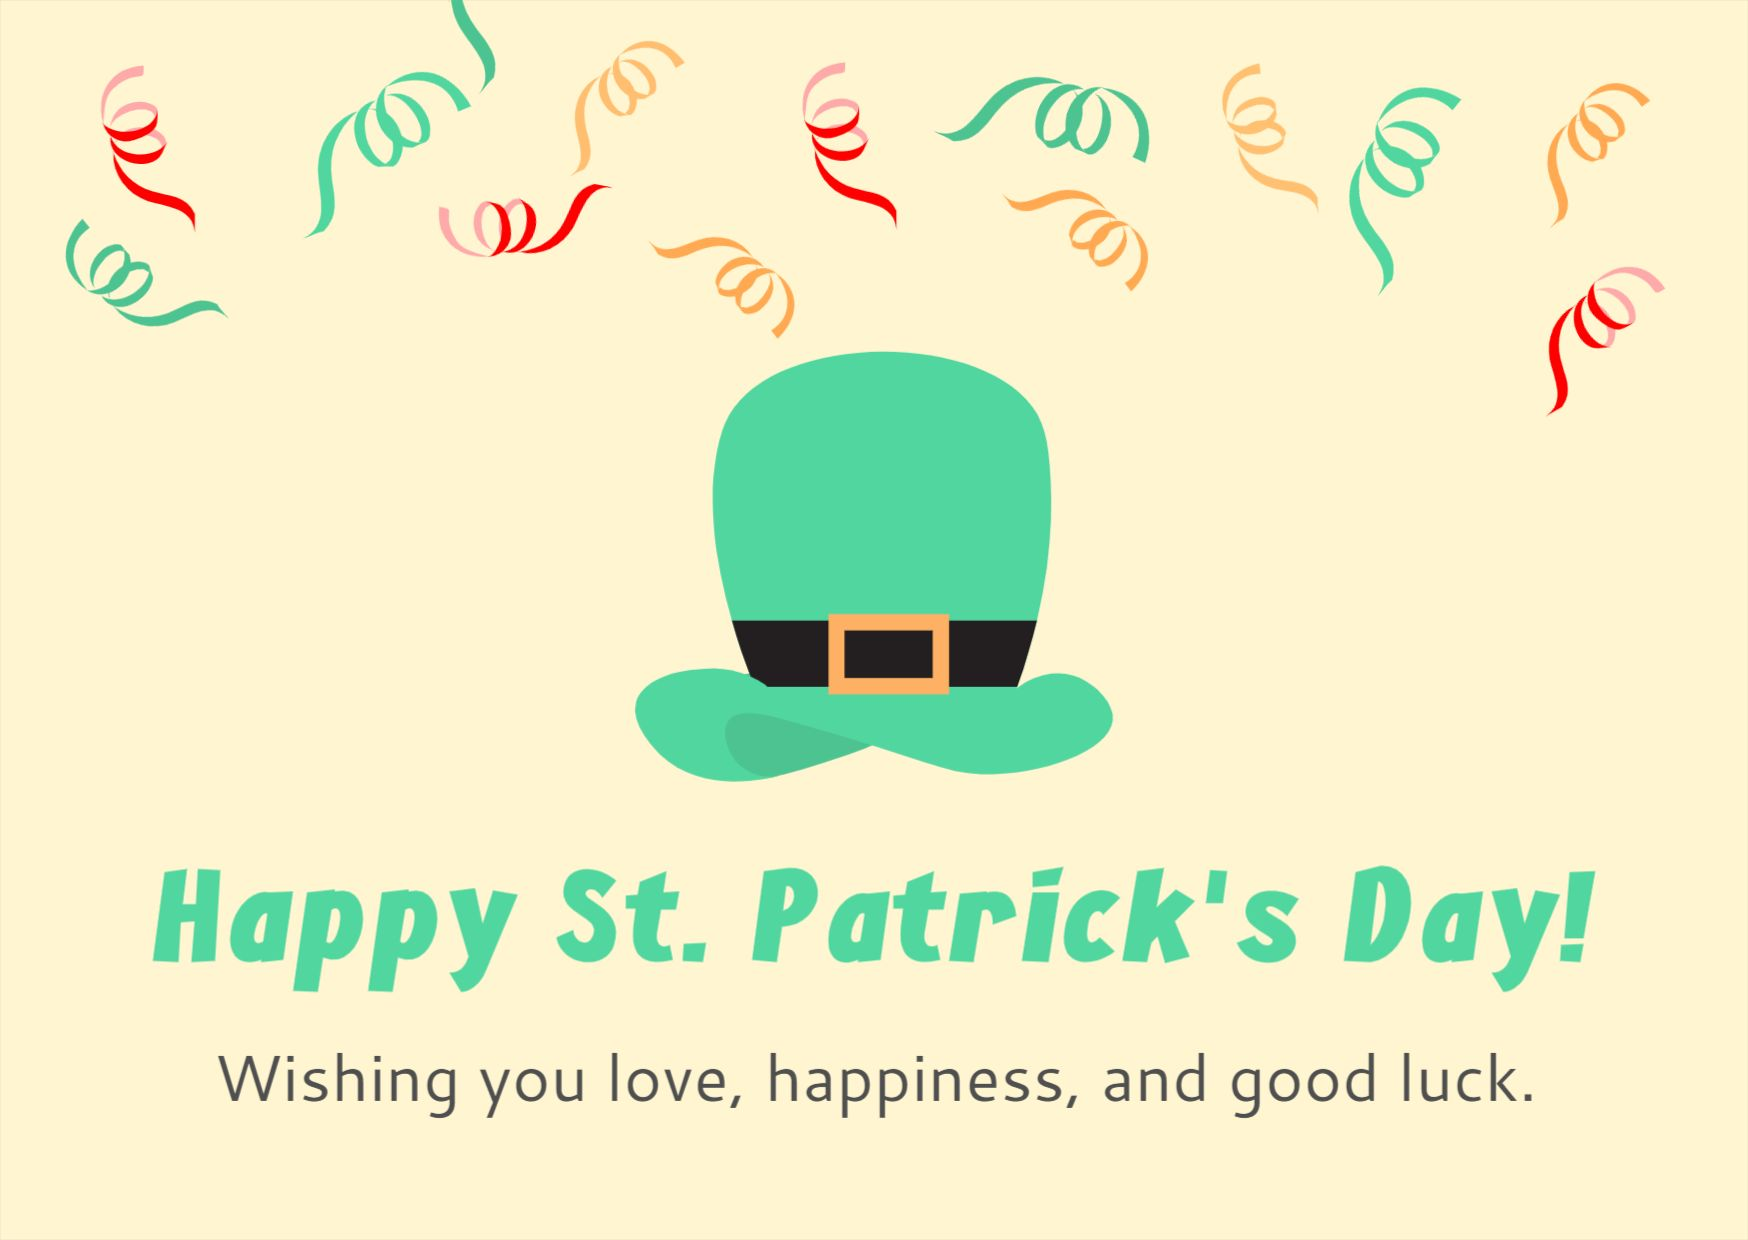 St. Patricks Day Greetings Card Template